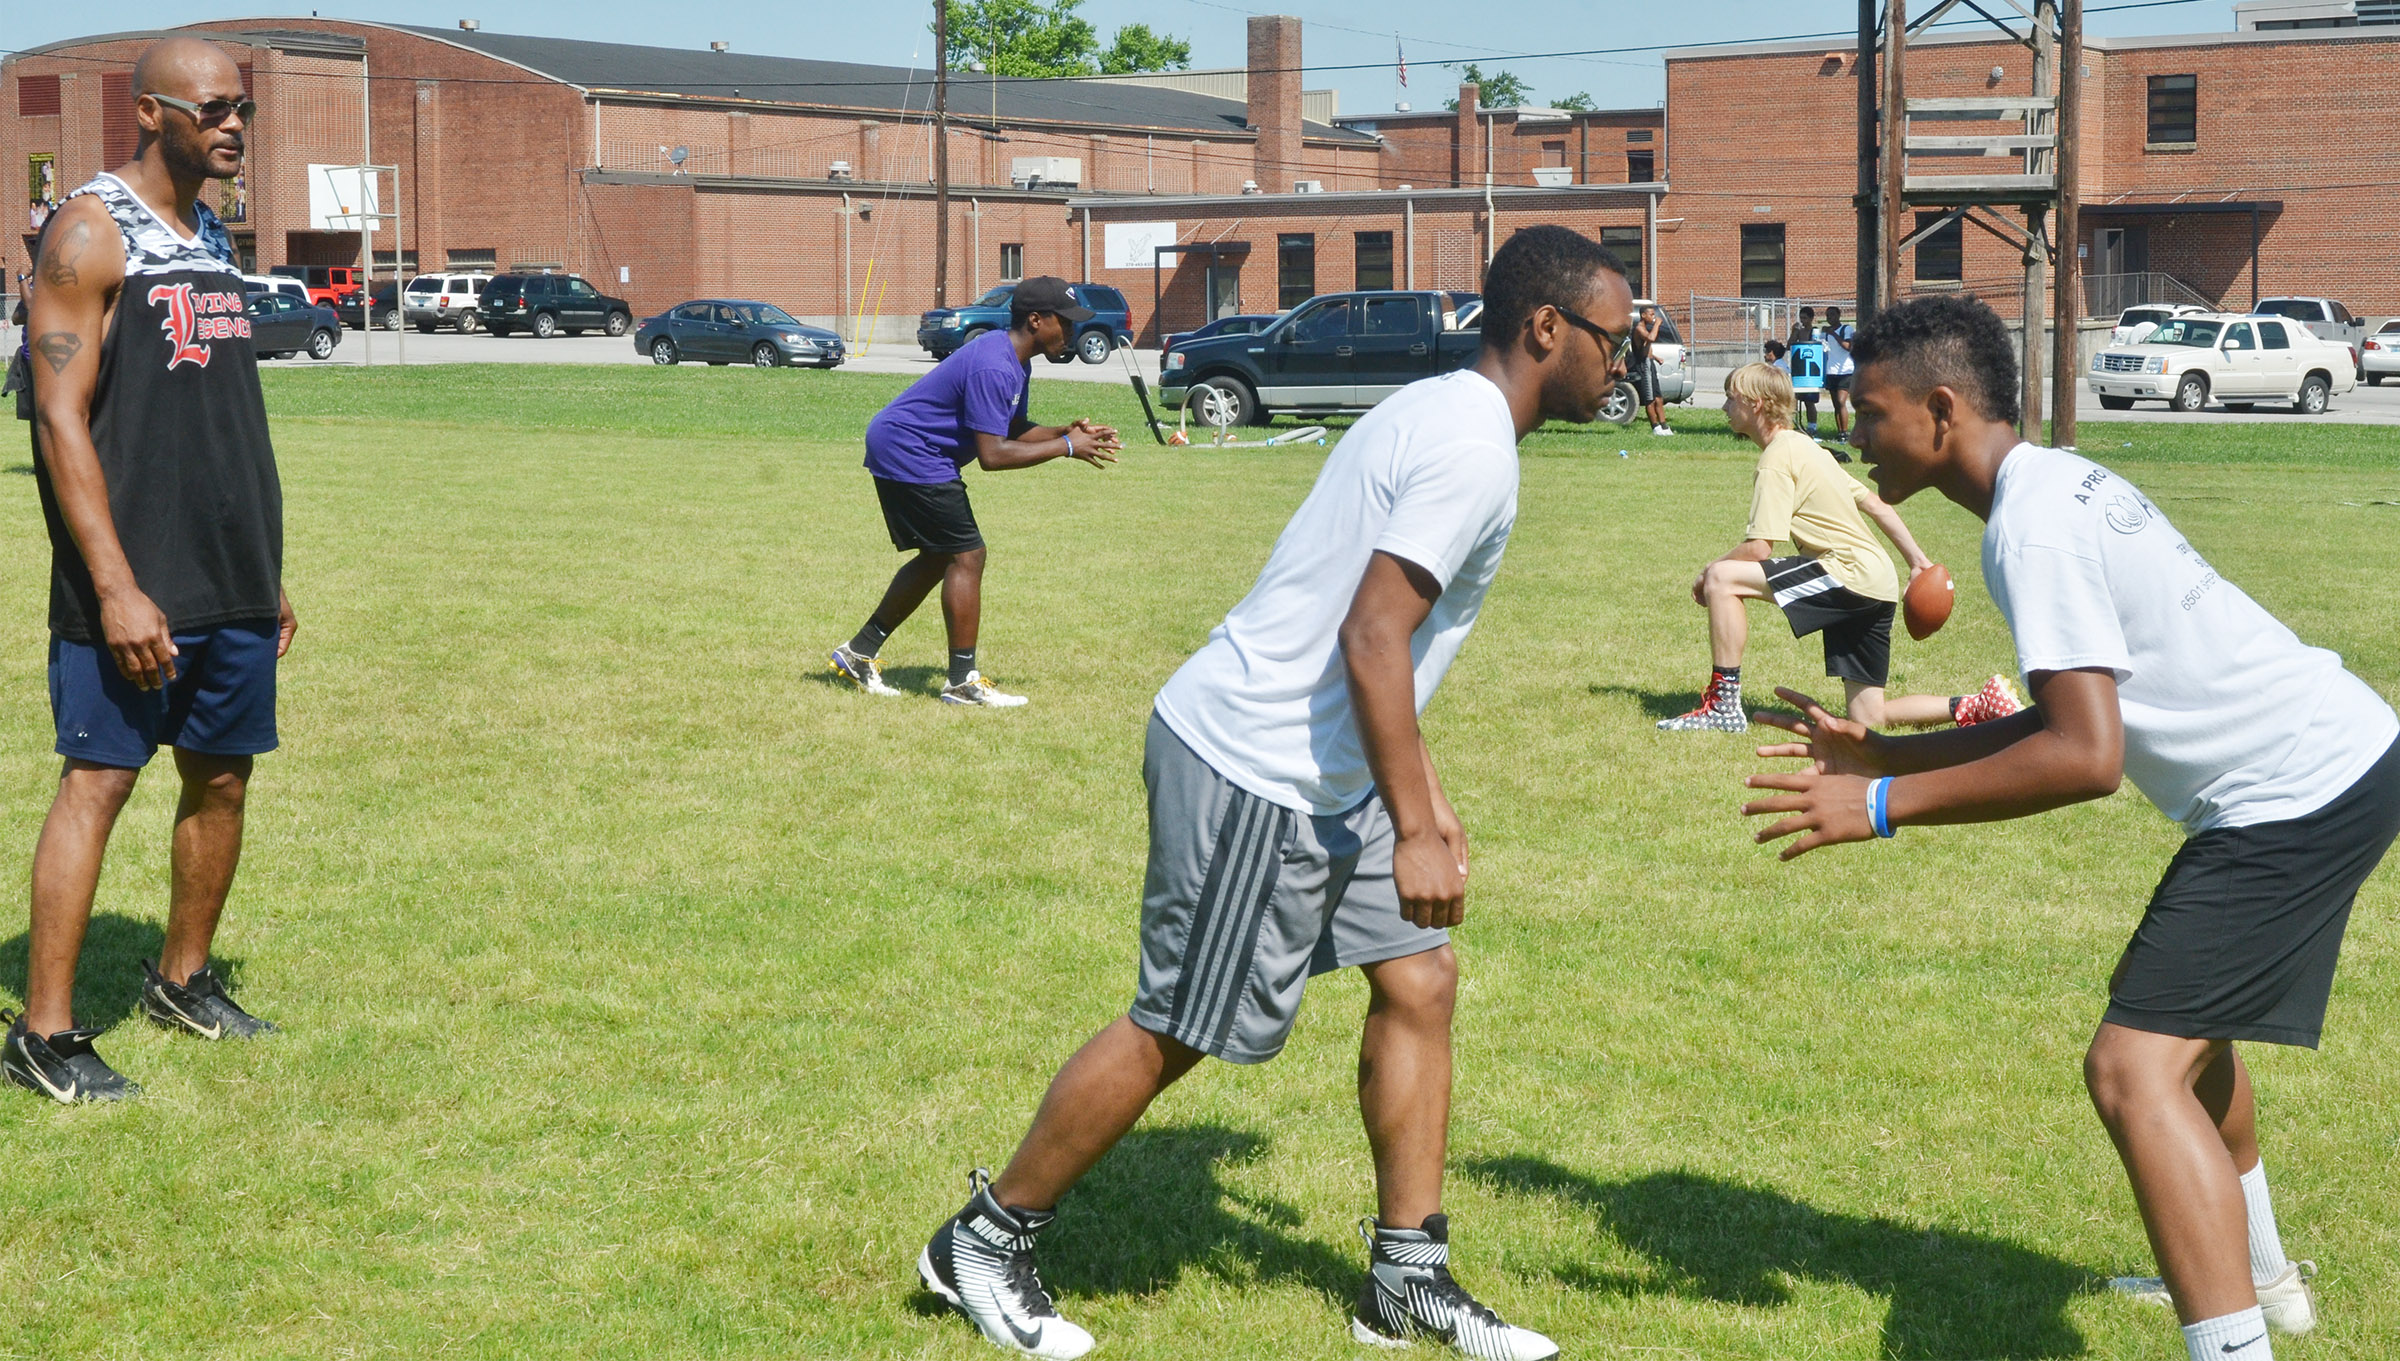 Former NFL player Tony Driver, at left, helps CHS football players as they run a play.